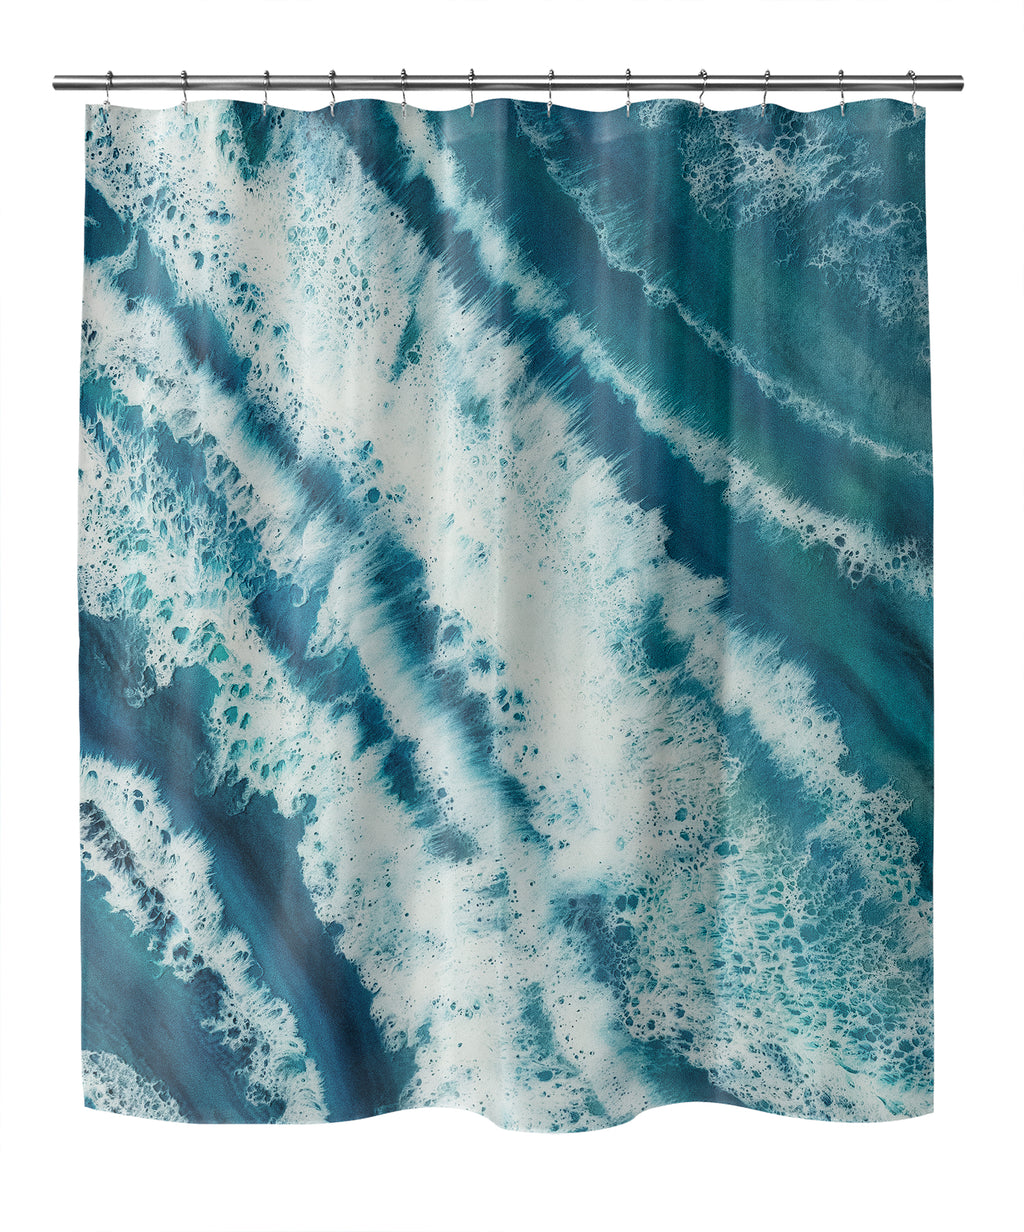 TROPICAL WAVES Shower Curtain By Christina Twomey